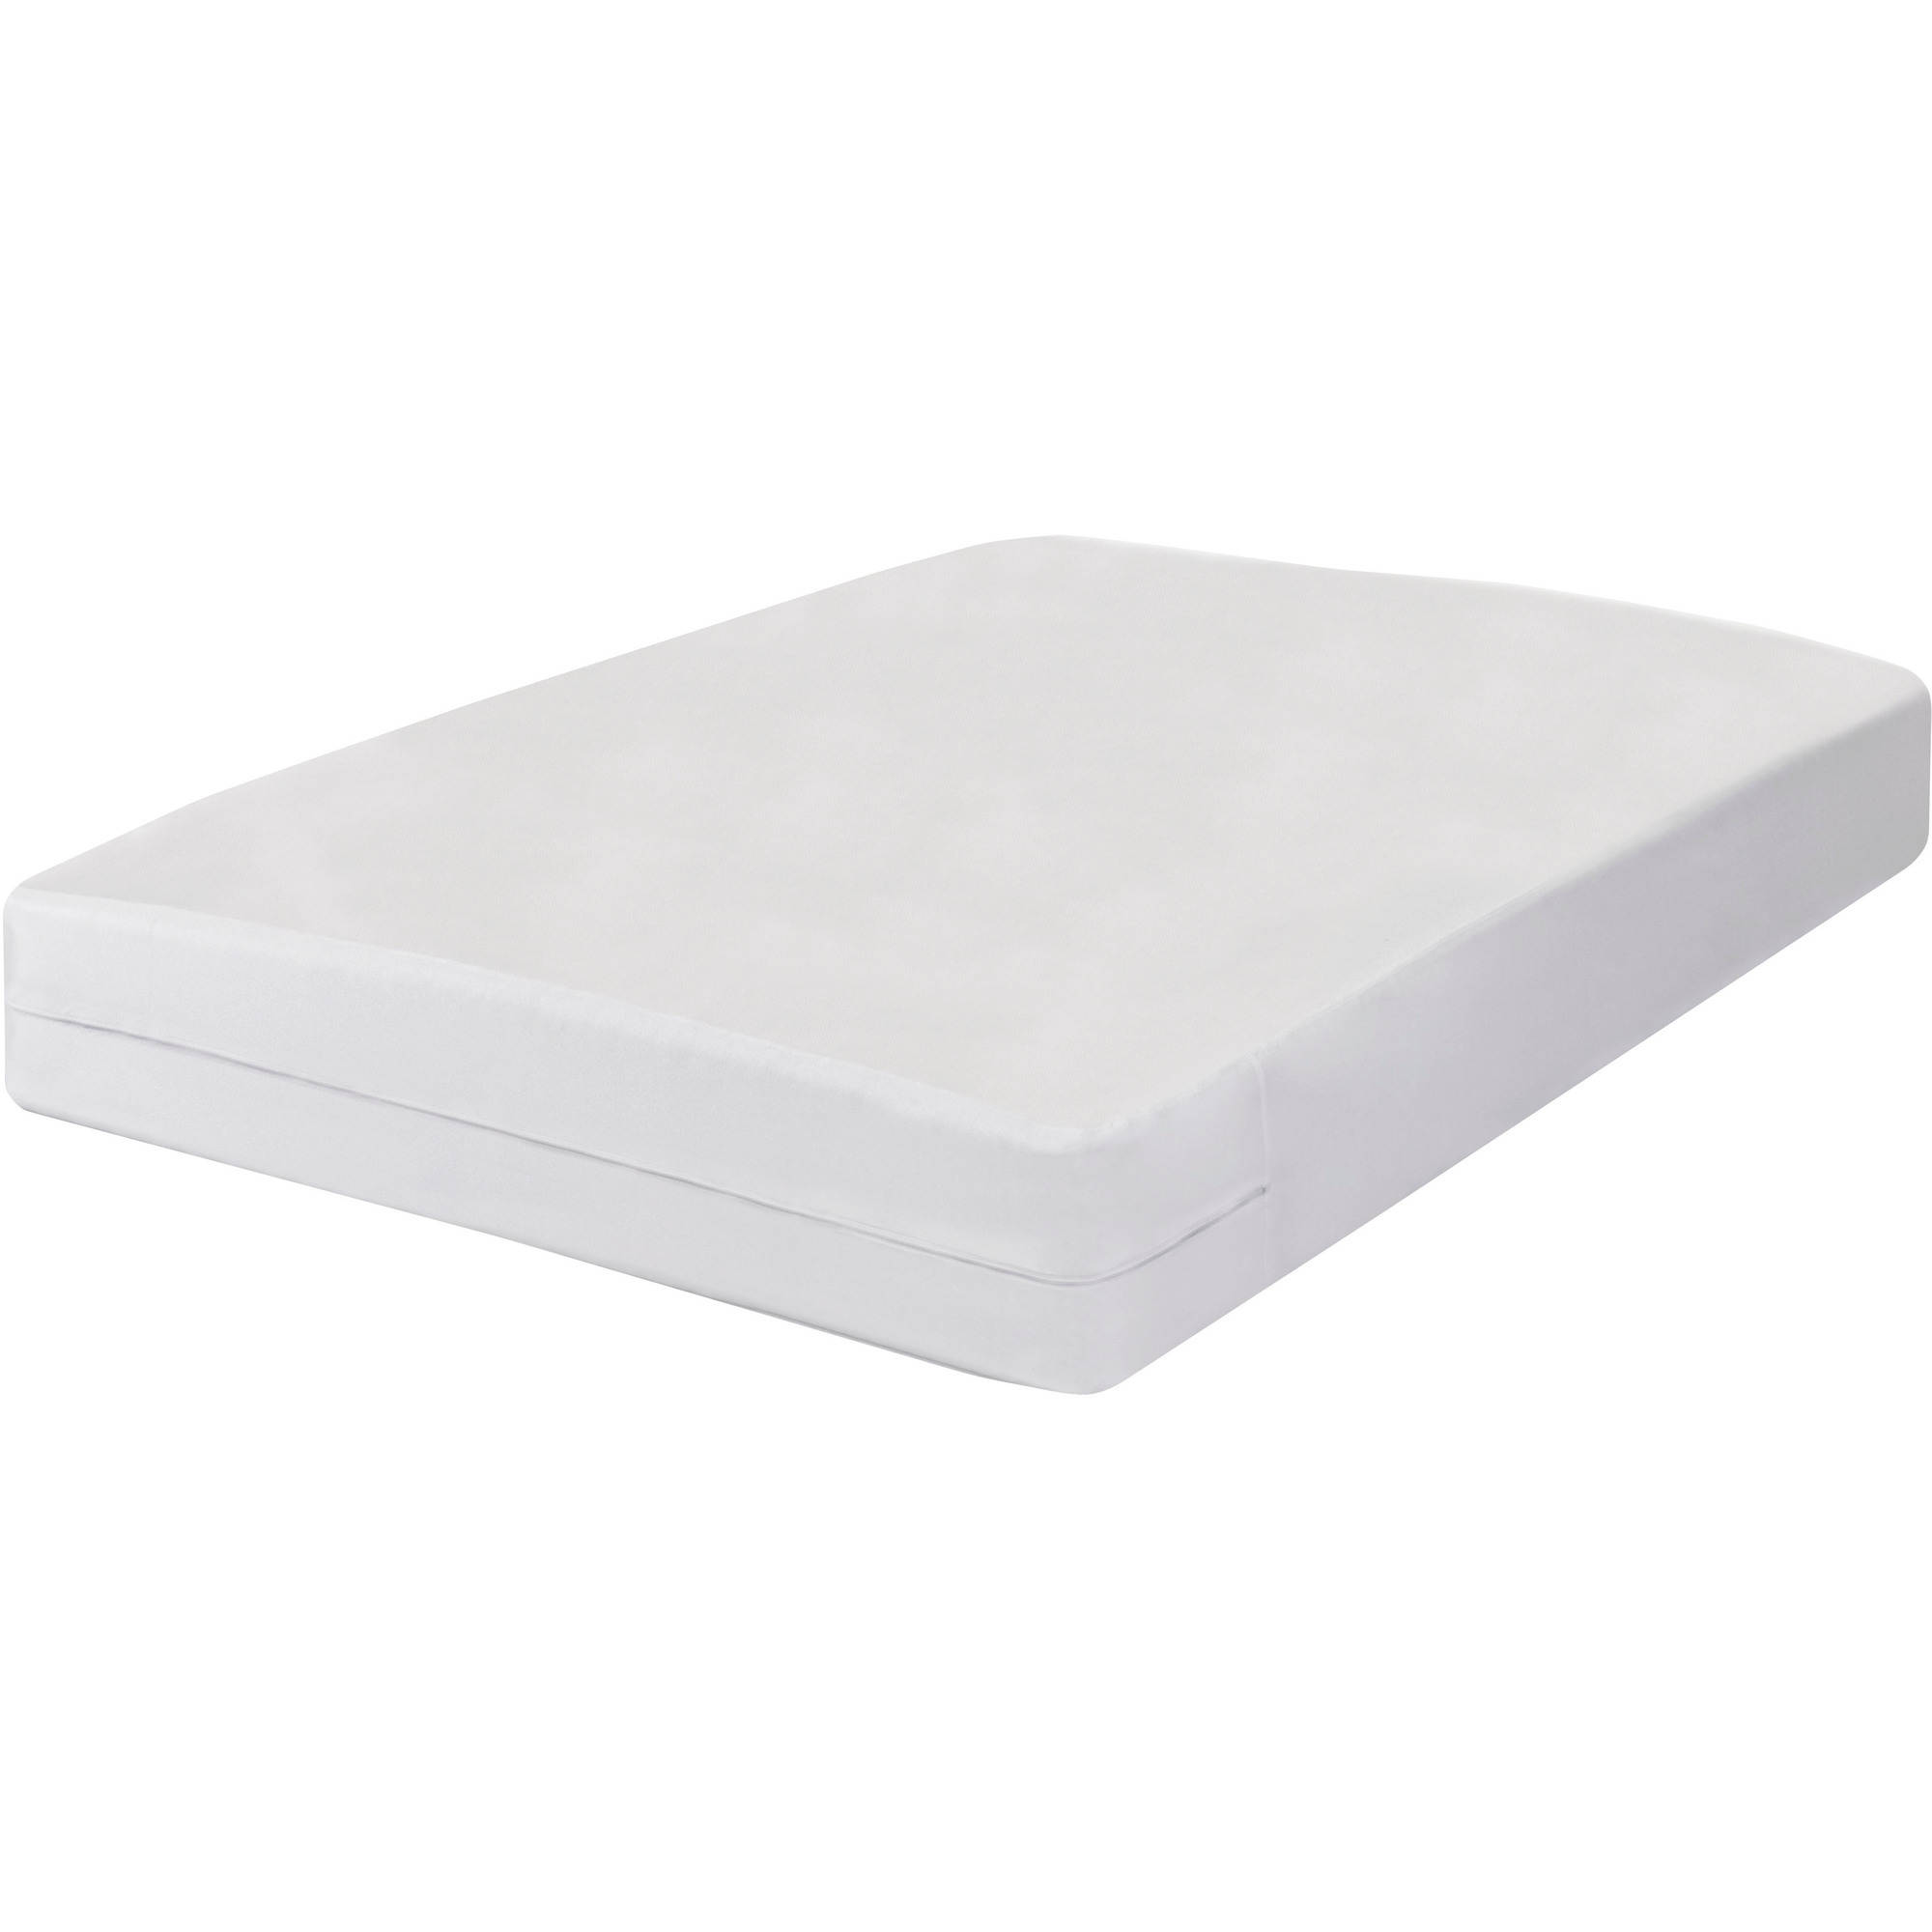 plastic bug cover wholesale protection mattress lists price bed and clear prevention for pads list protector covers